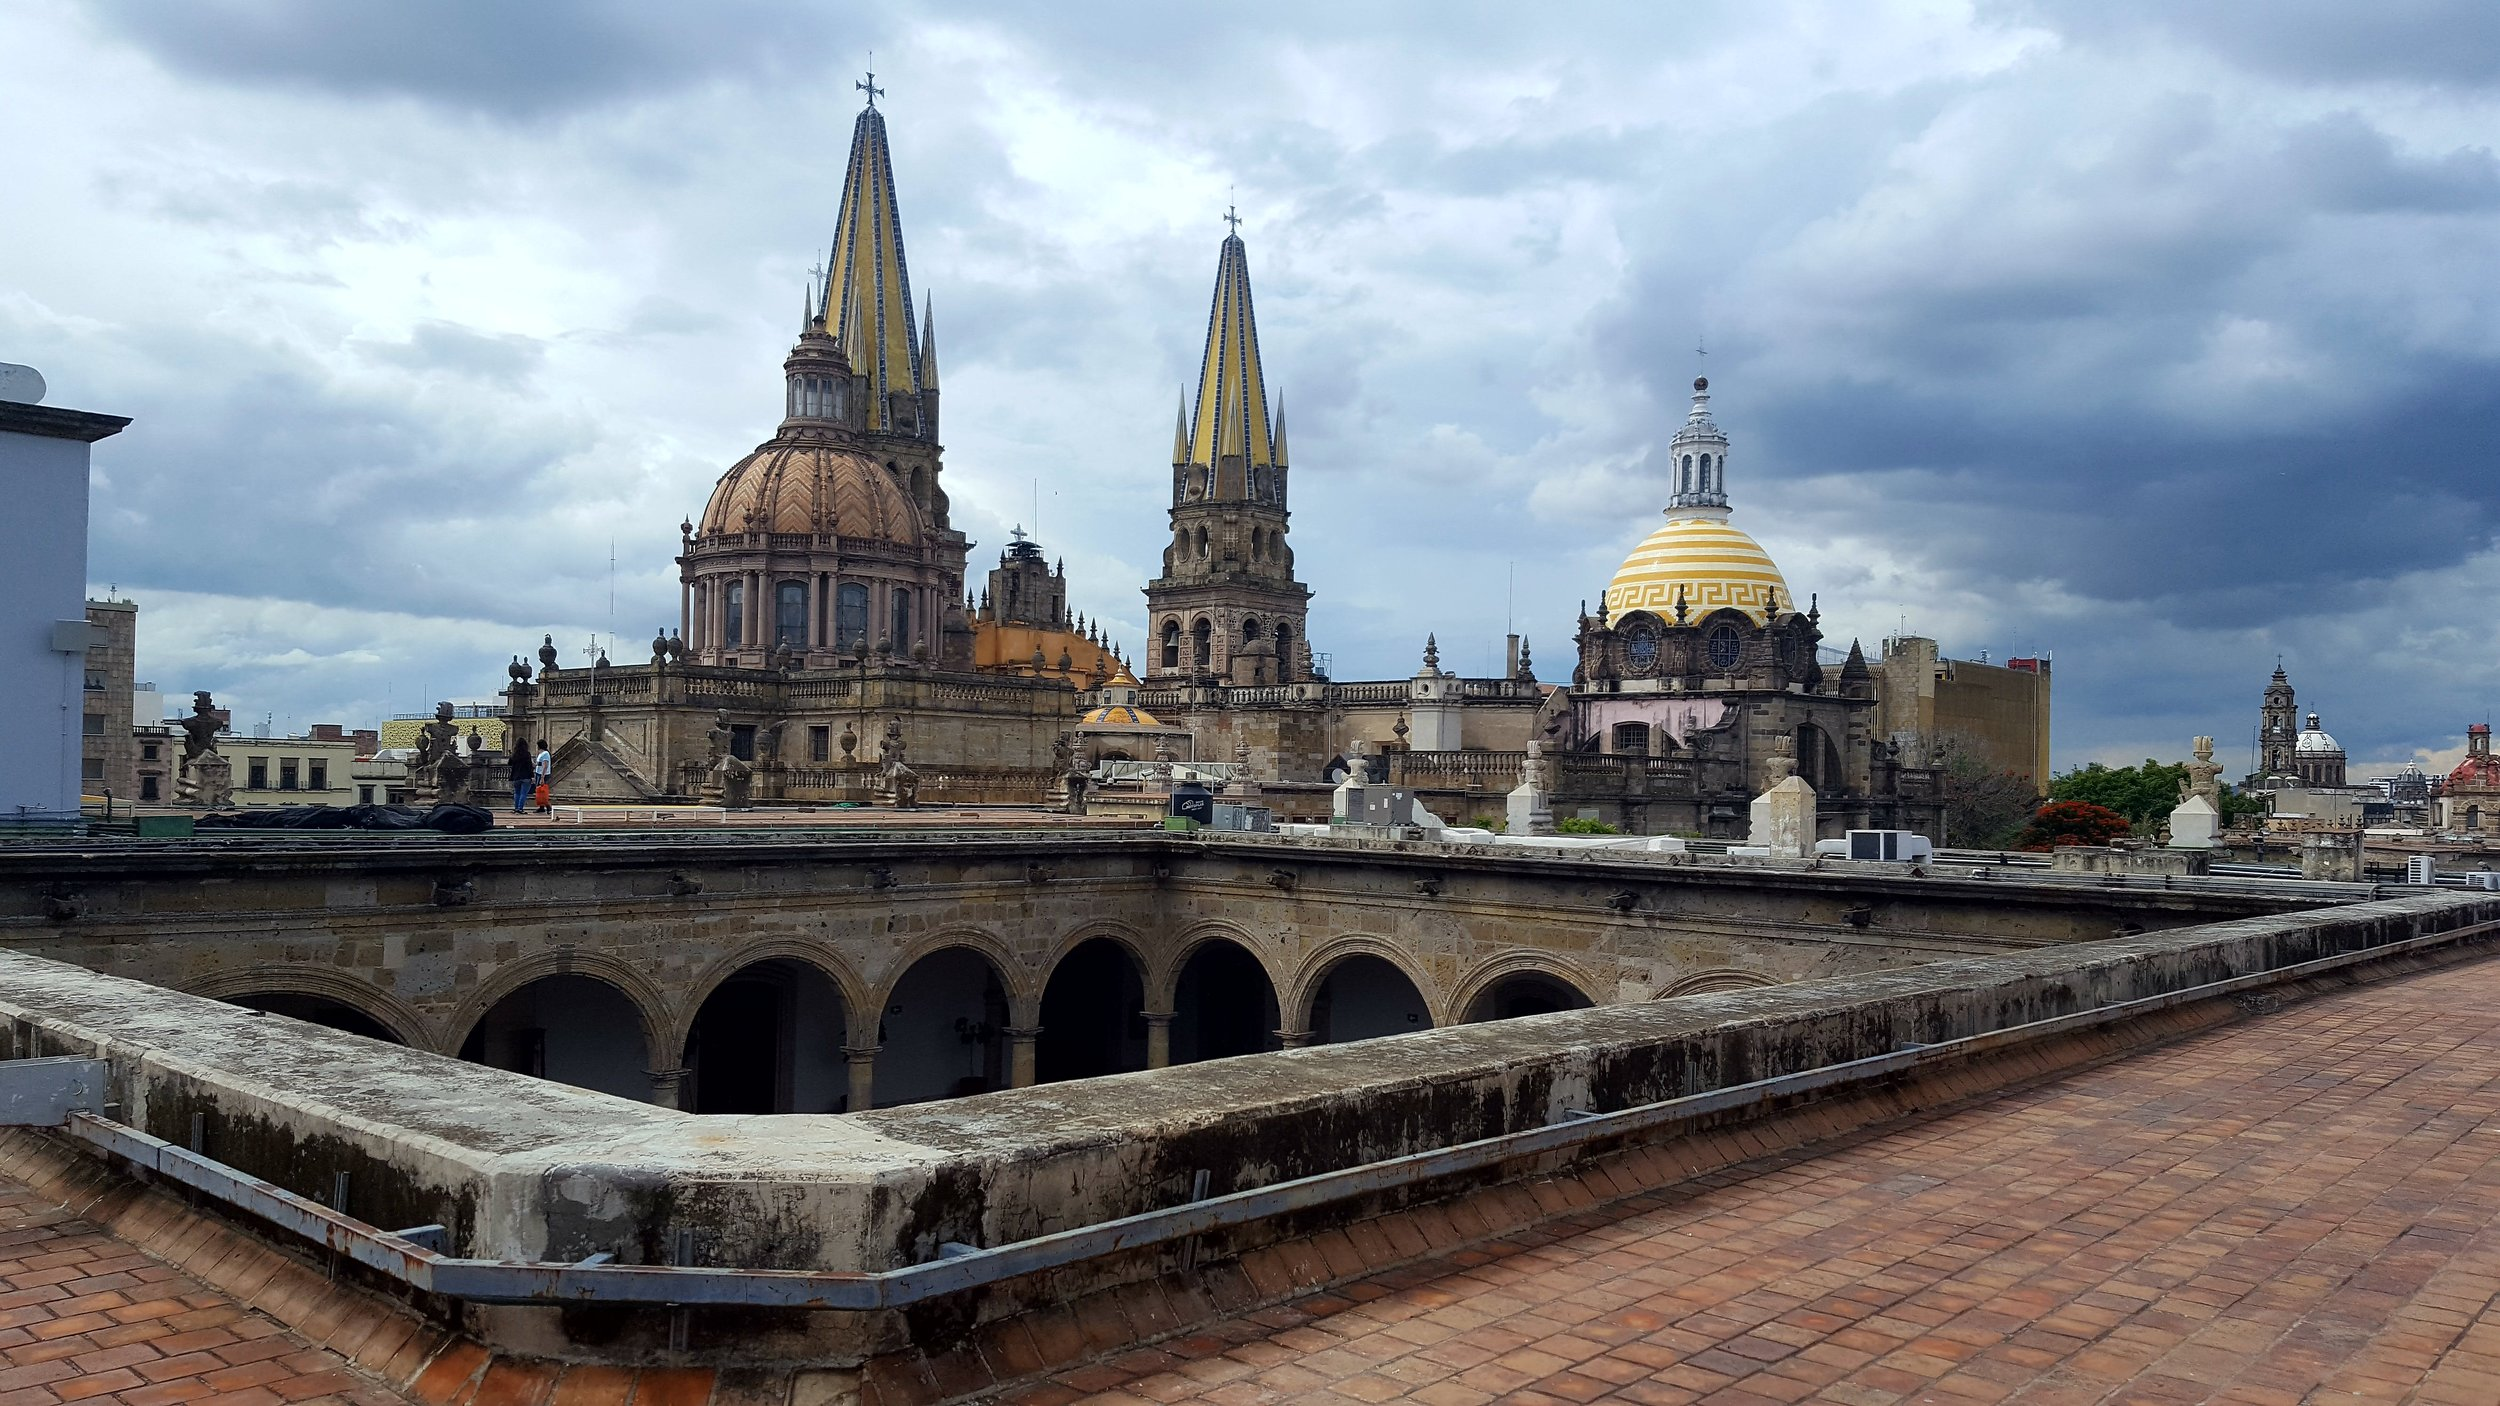 Took a bus to Guadalajara and found a beautiful rooftop view the next mornig